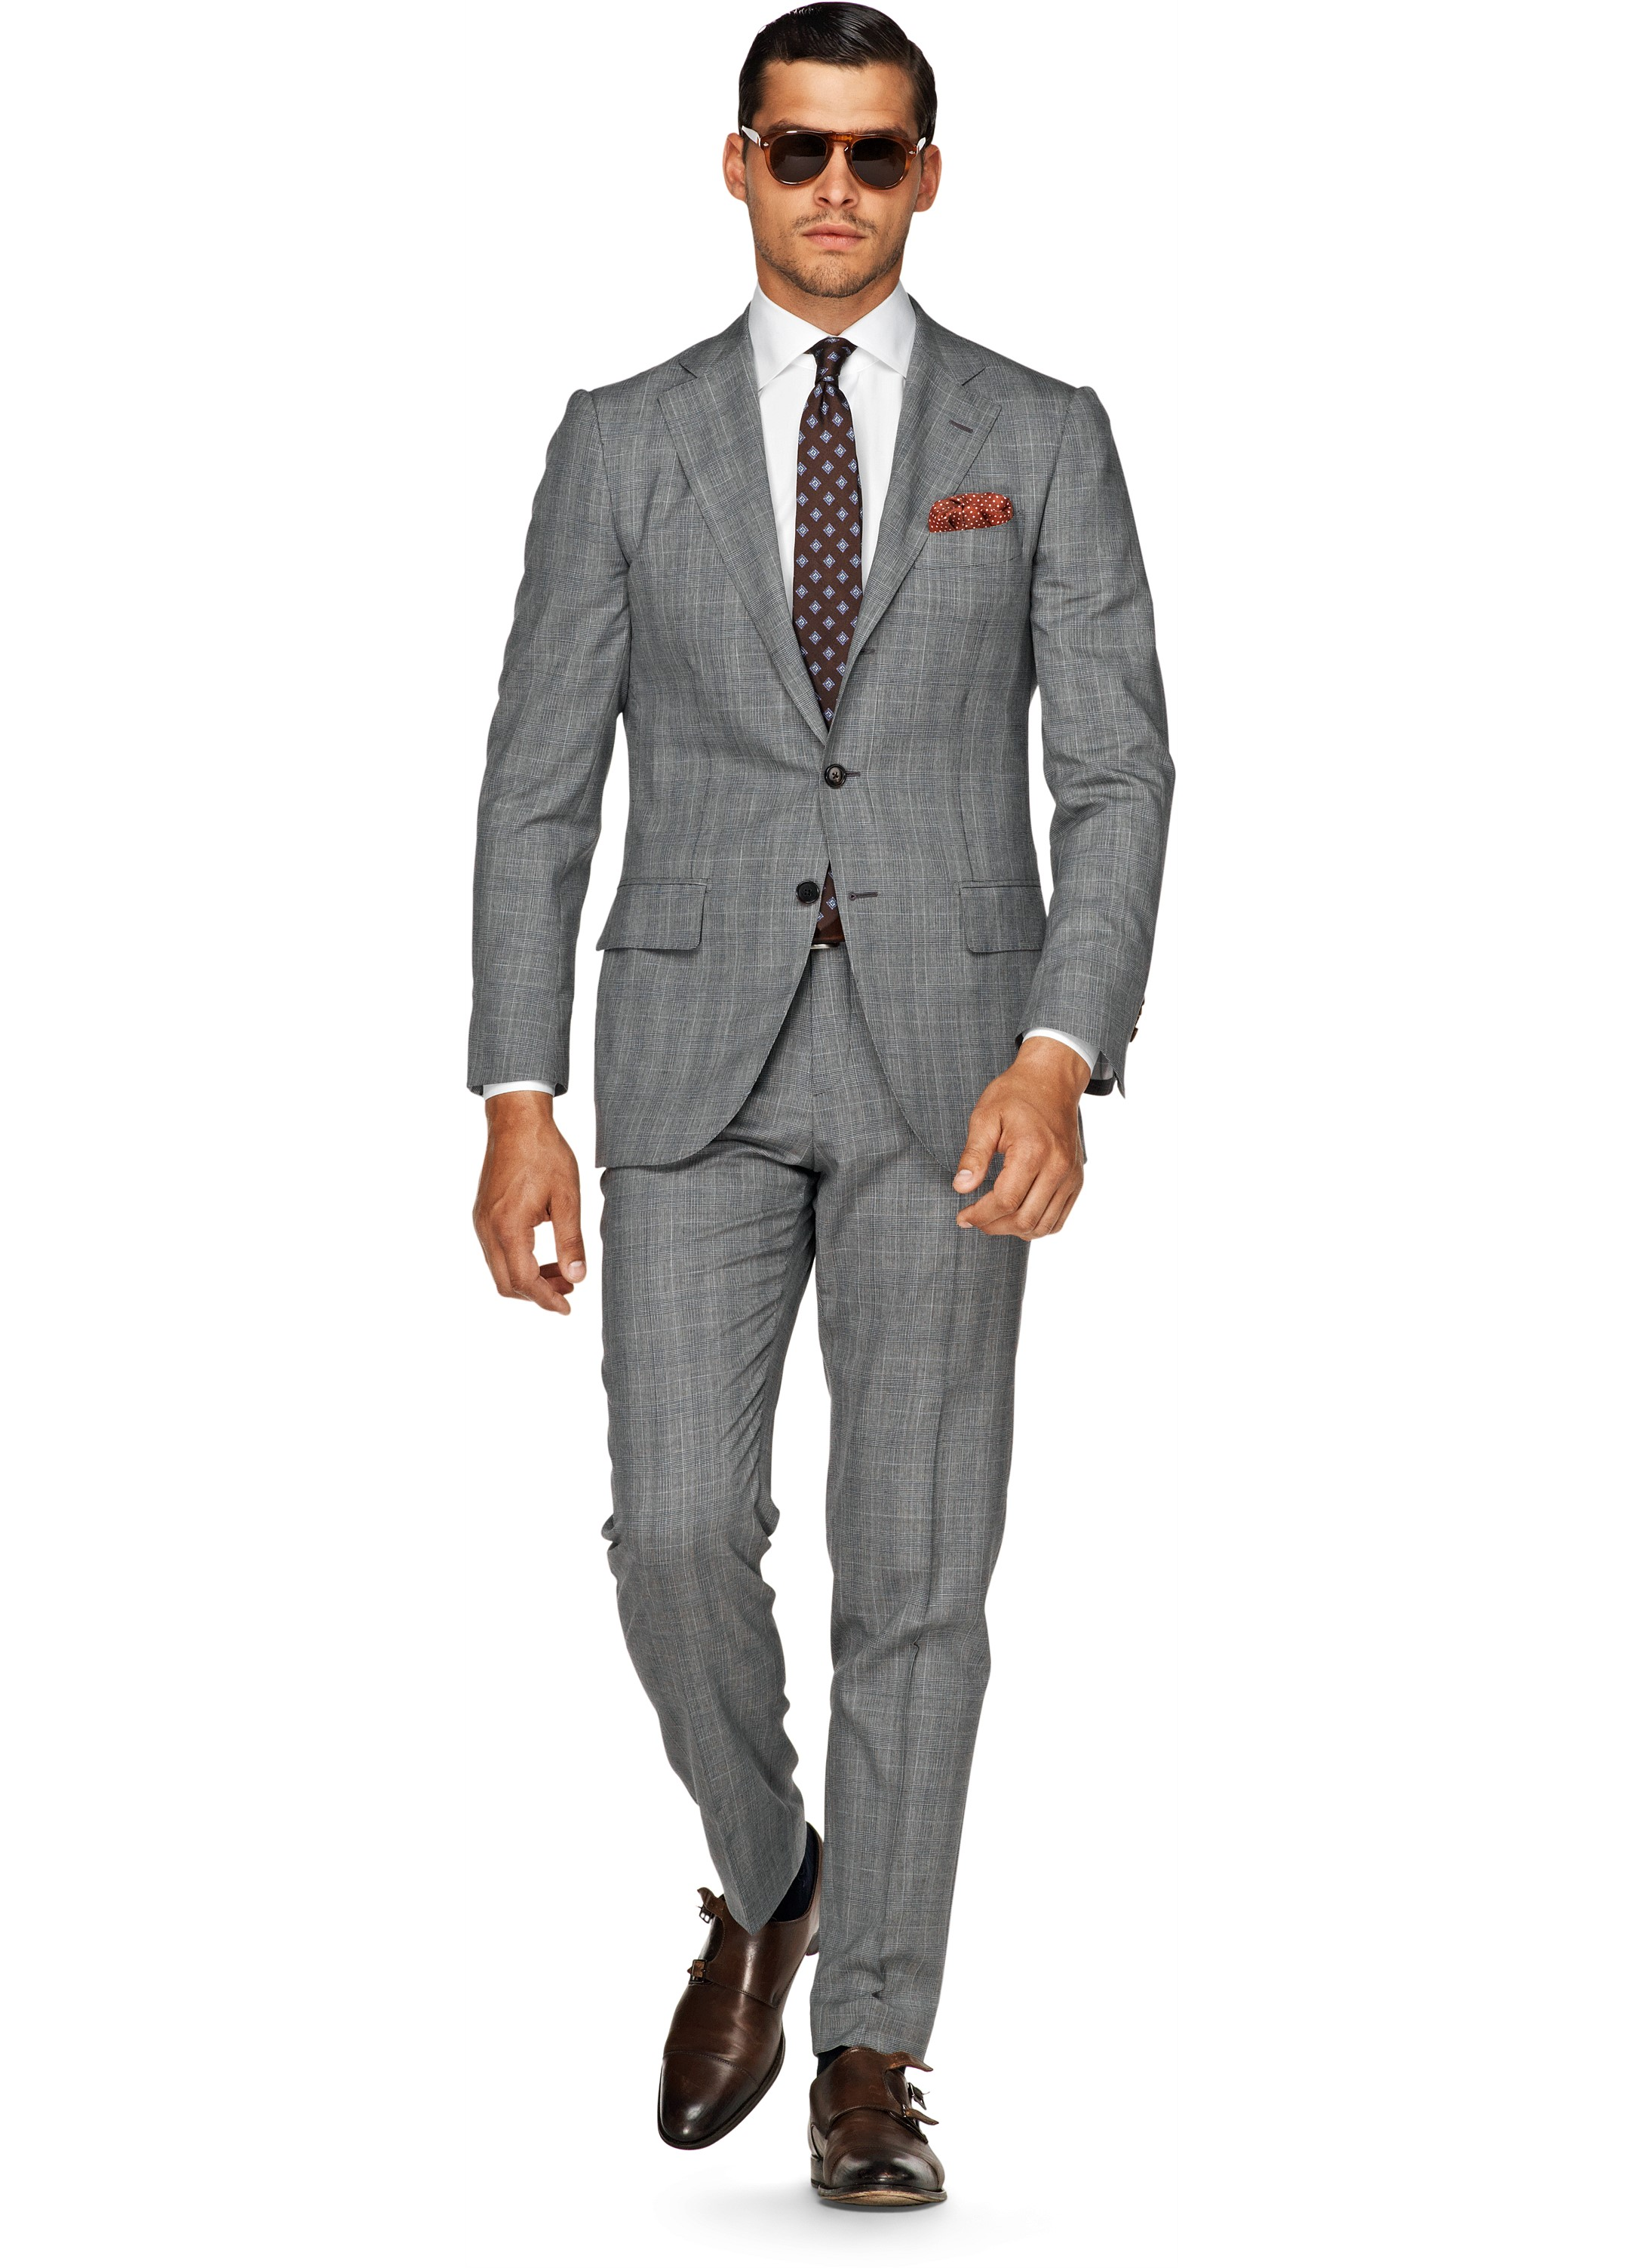 help with picking out a versatile suit style that i can